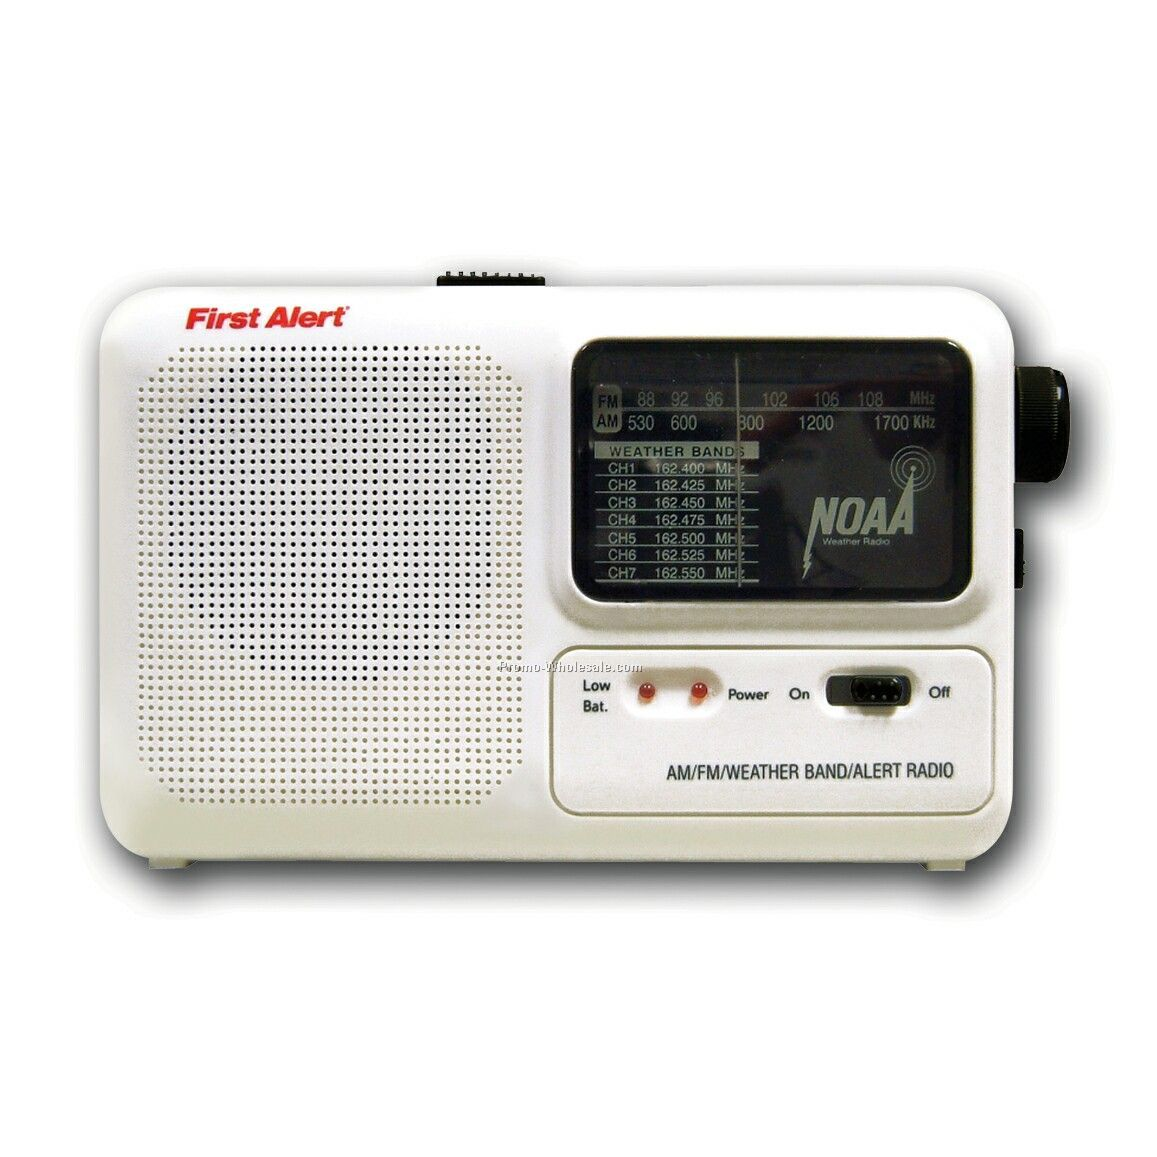 Portable AM/FM Emergency Alert Radio